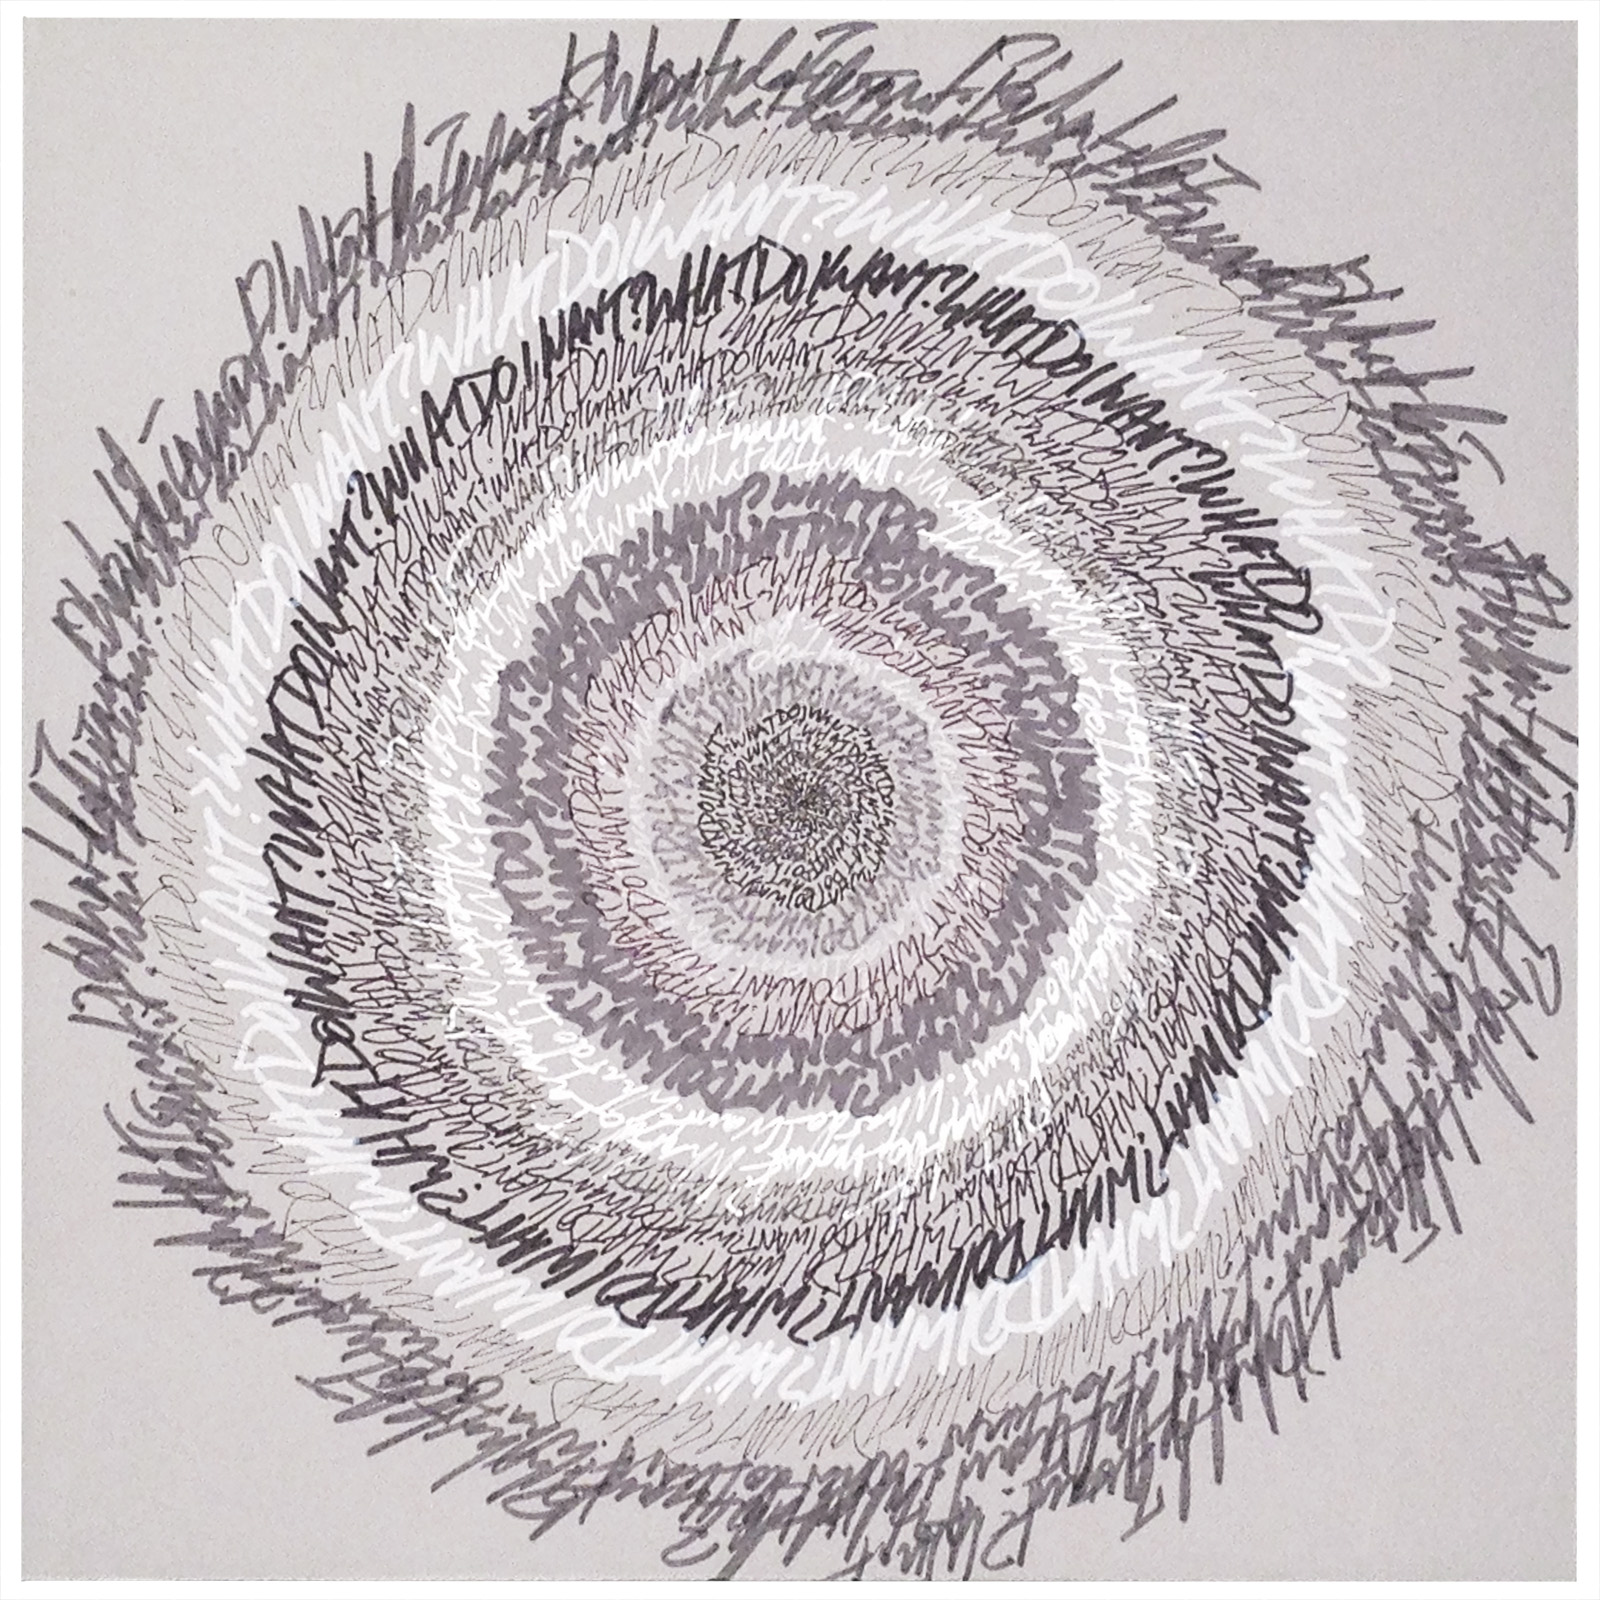 """Energy Spiral—What Do I Want?"", 2014, pen & marker on paper, 10 in. x 10 in."